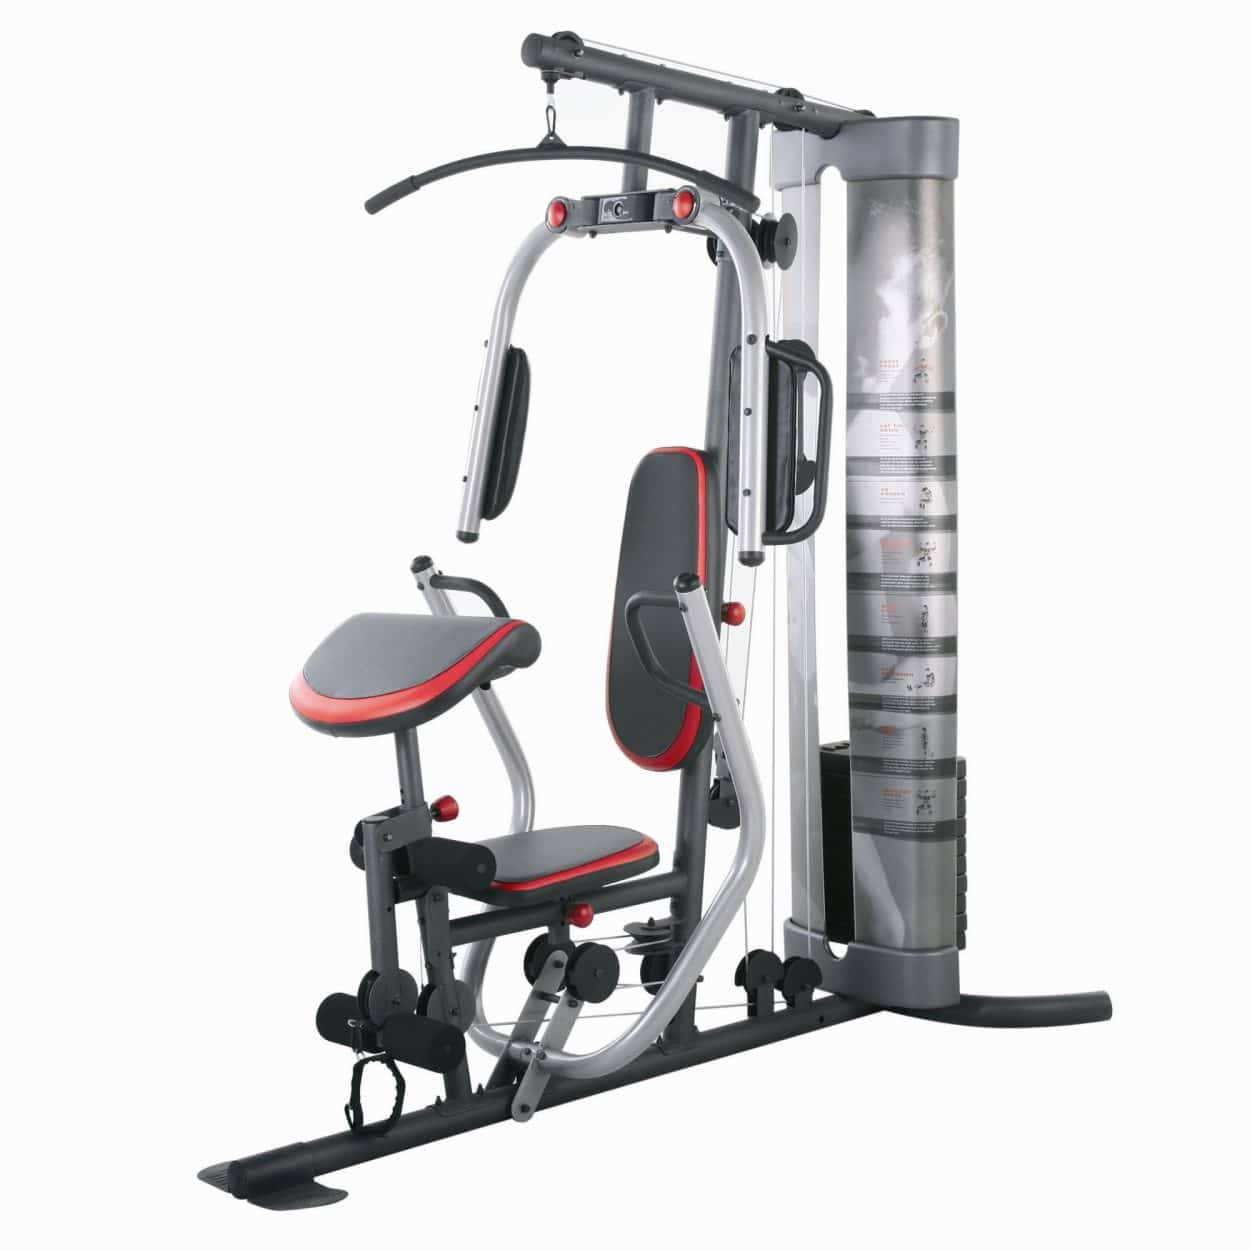 Weider pro multi gym best prices reviews fitness savvy